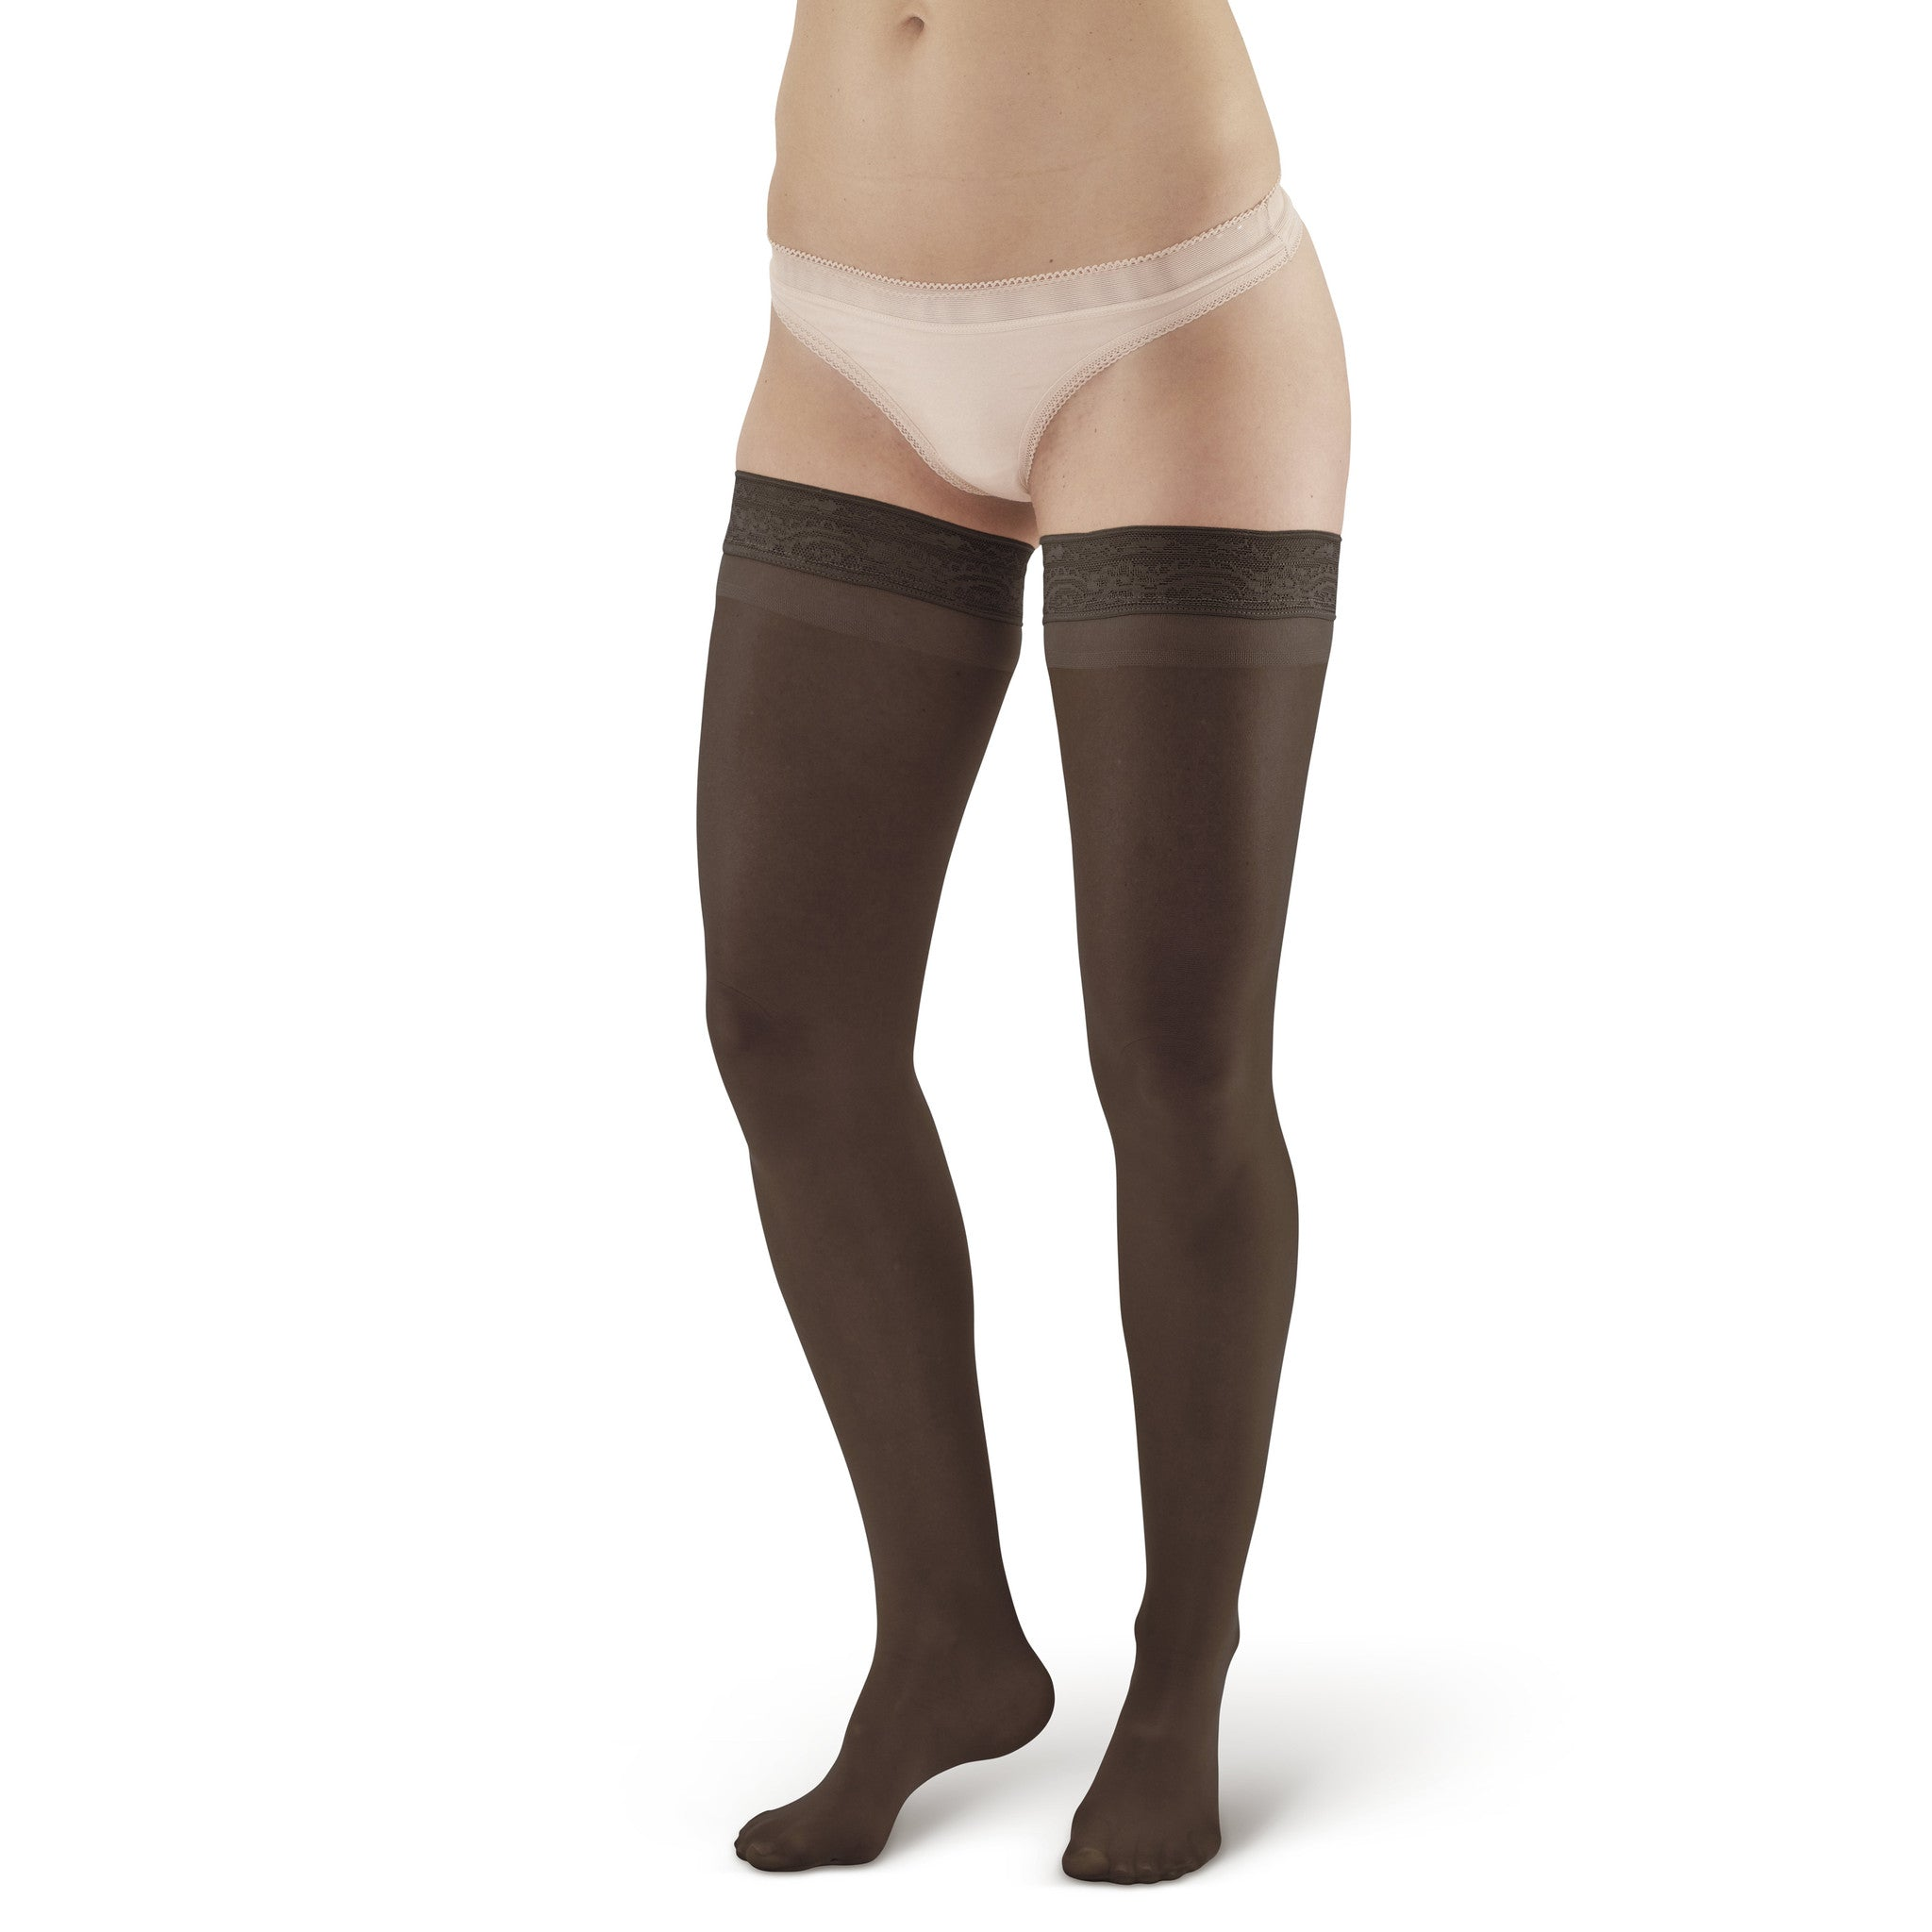 b90a0106d3 AW Style 74 Soft Sheer Thigh Highs w/ Lace Band - 8-15 mmHg – Ames ...